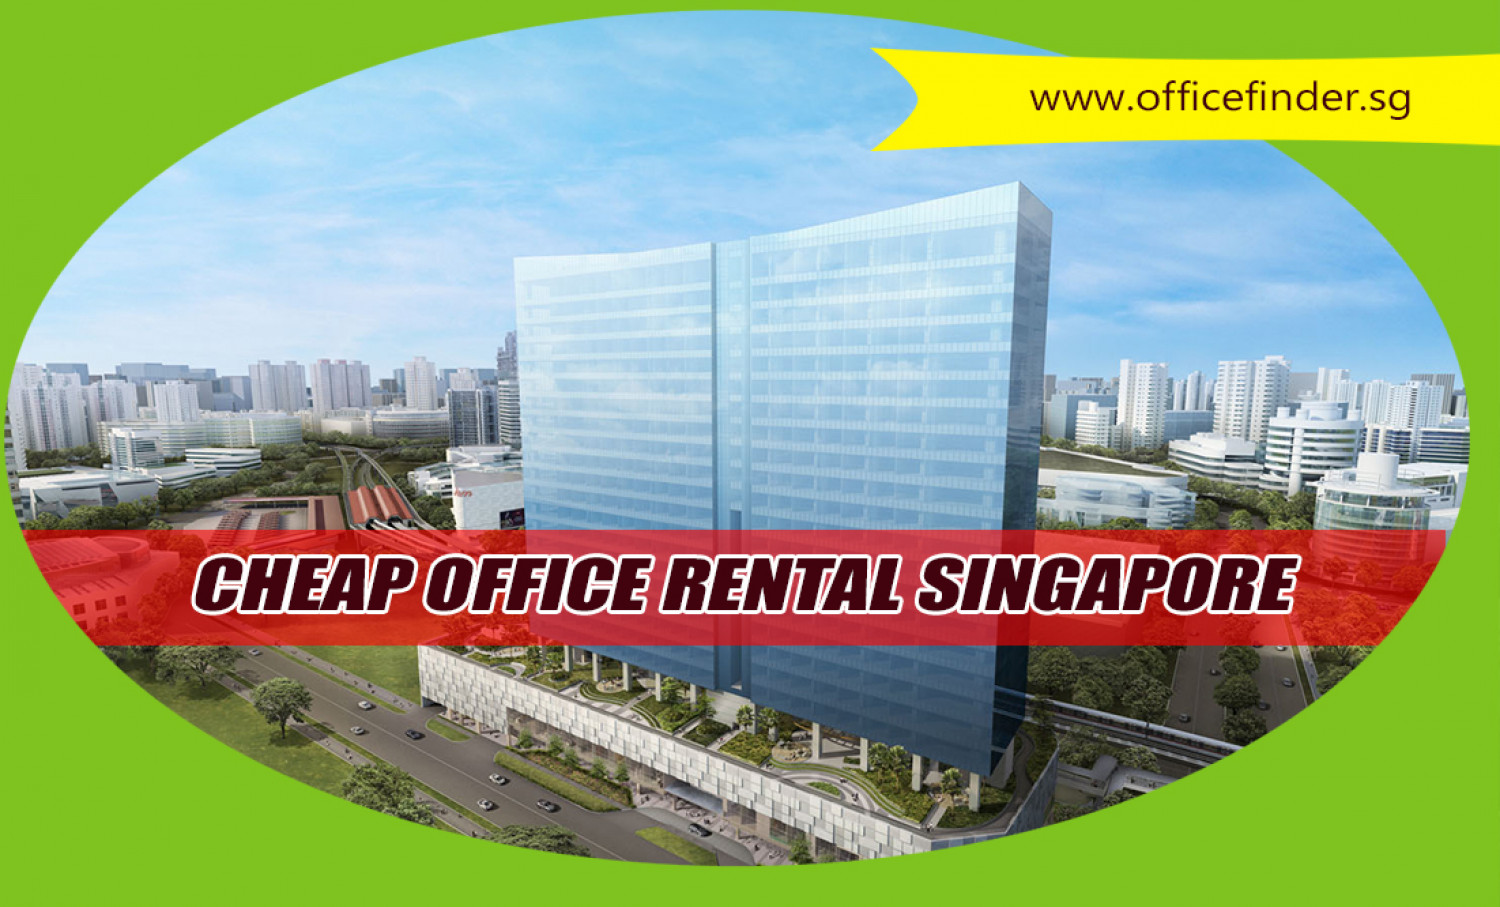 Cheap Office Rental Singapore Infographic